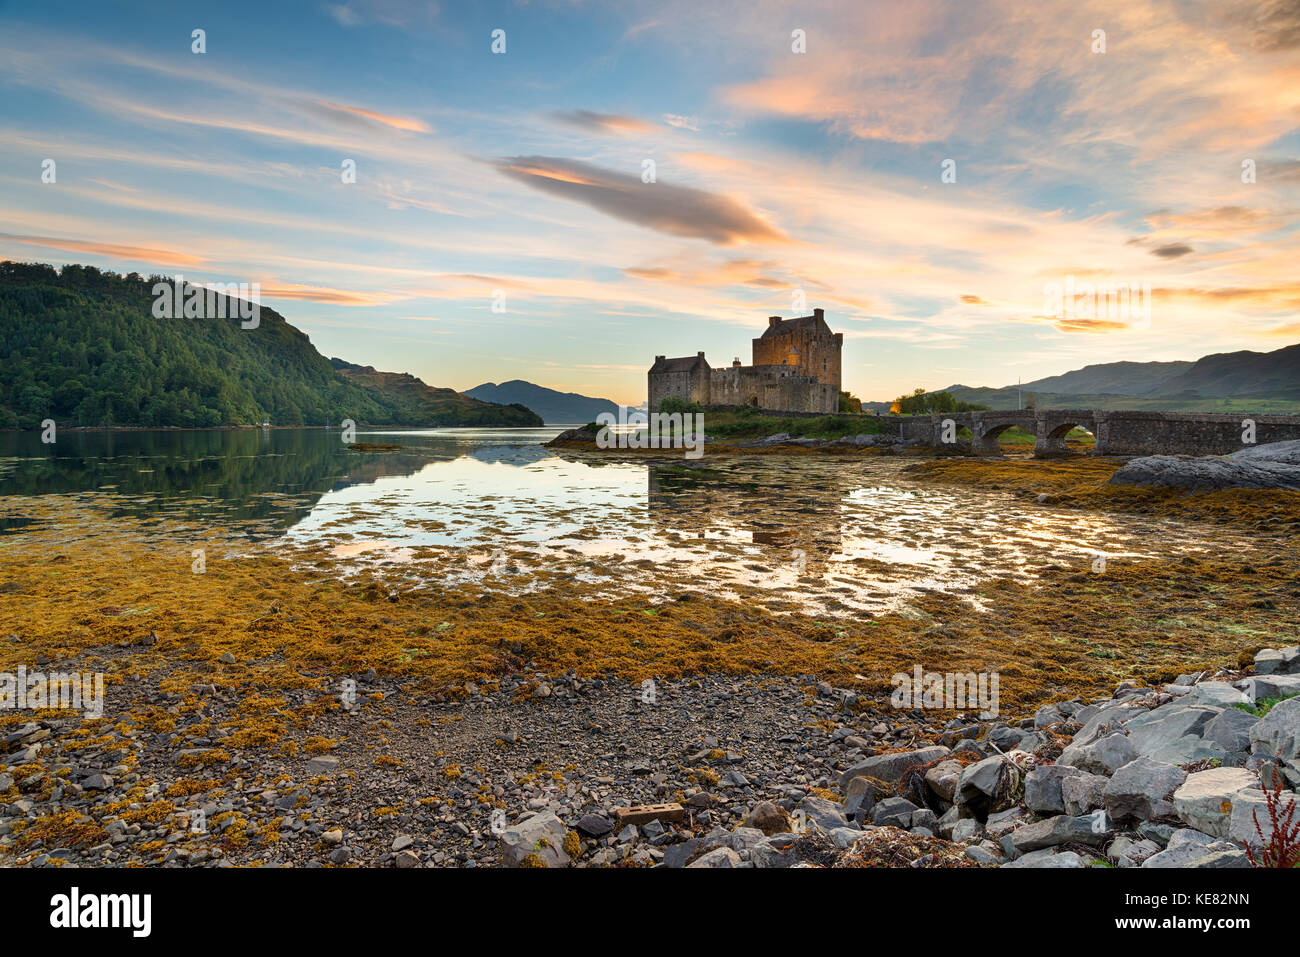 Sunset over Eilean Donan Donan Castle on the shores of Kyle of Lochalsh in the Highlands of Scotland Stock Photo